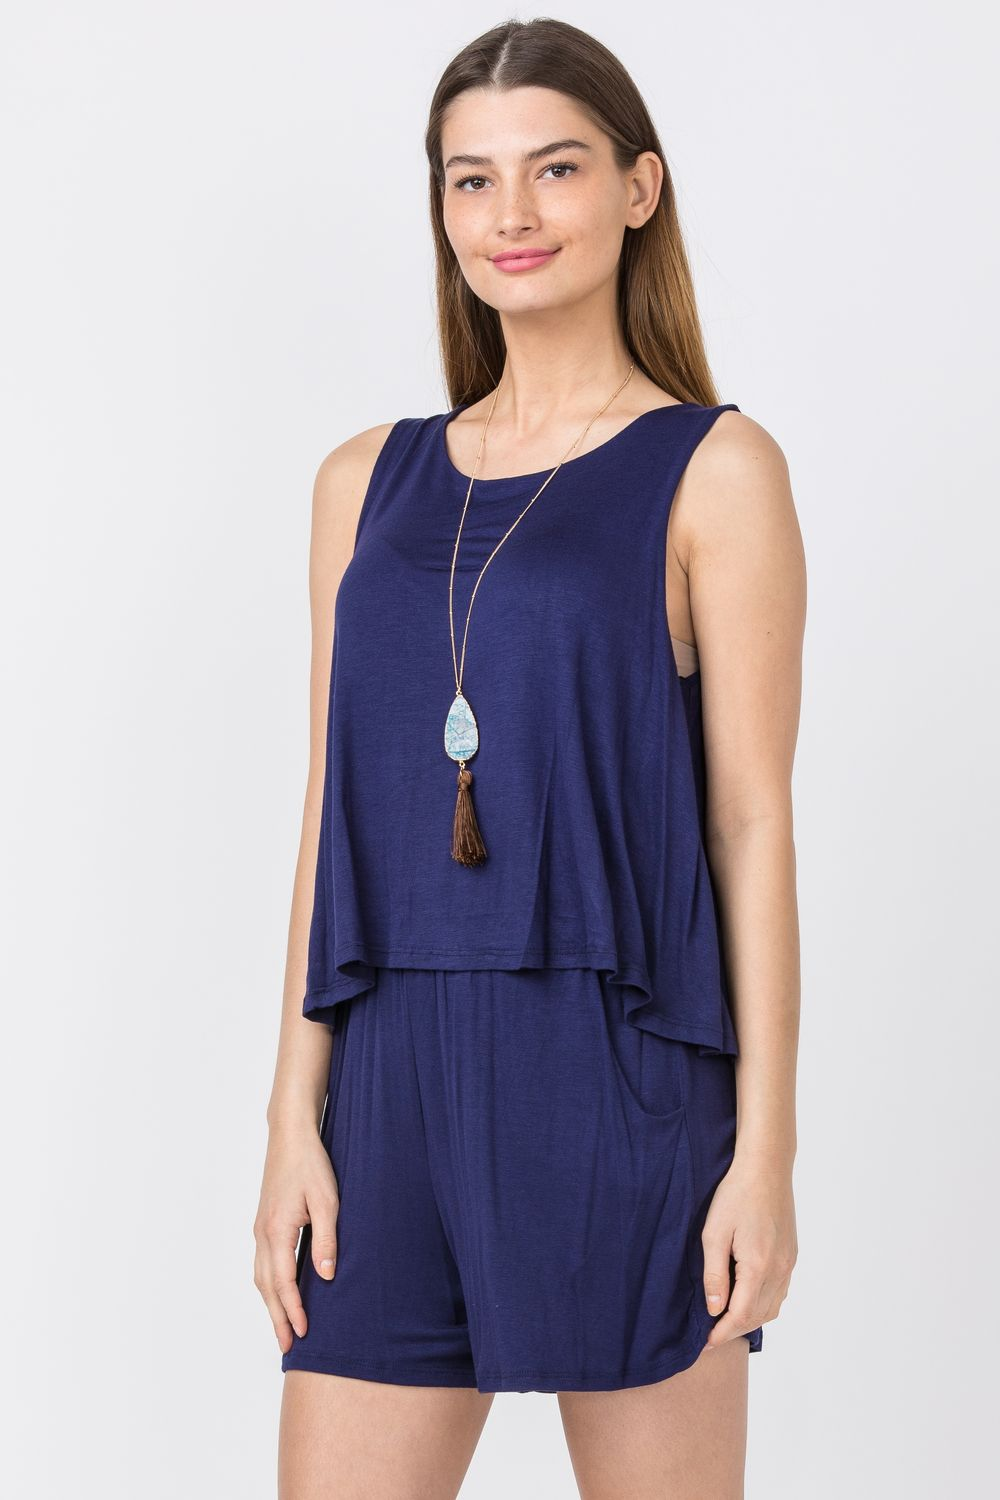 Solid Navy Layered Romper